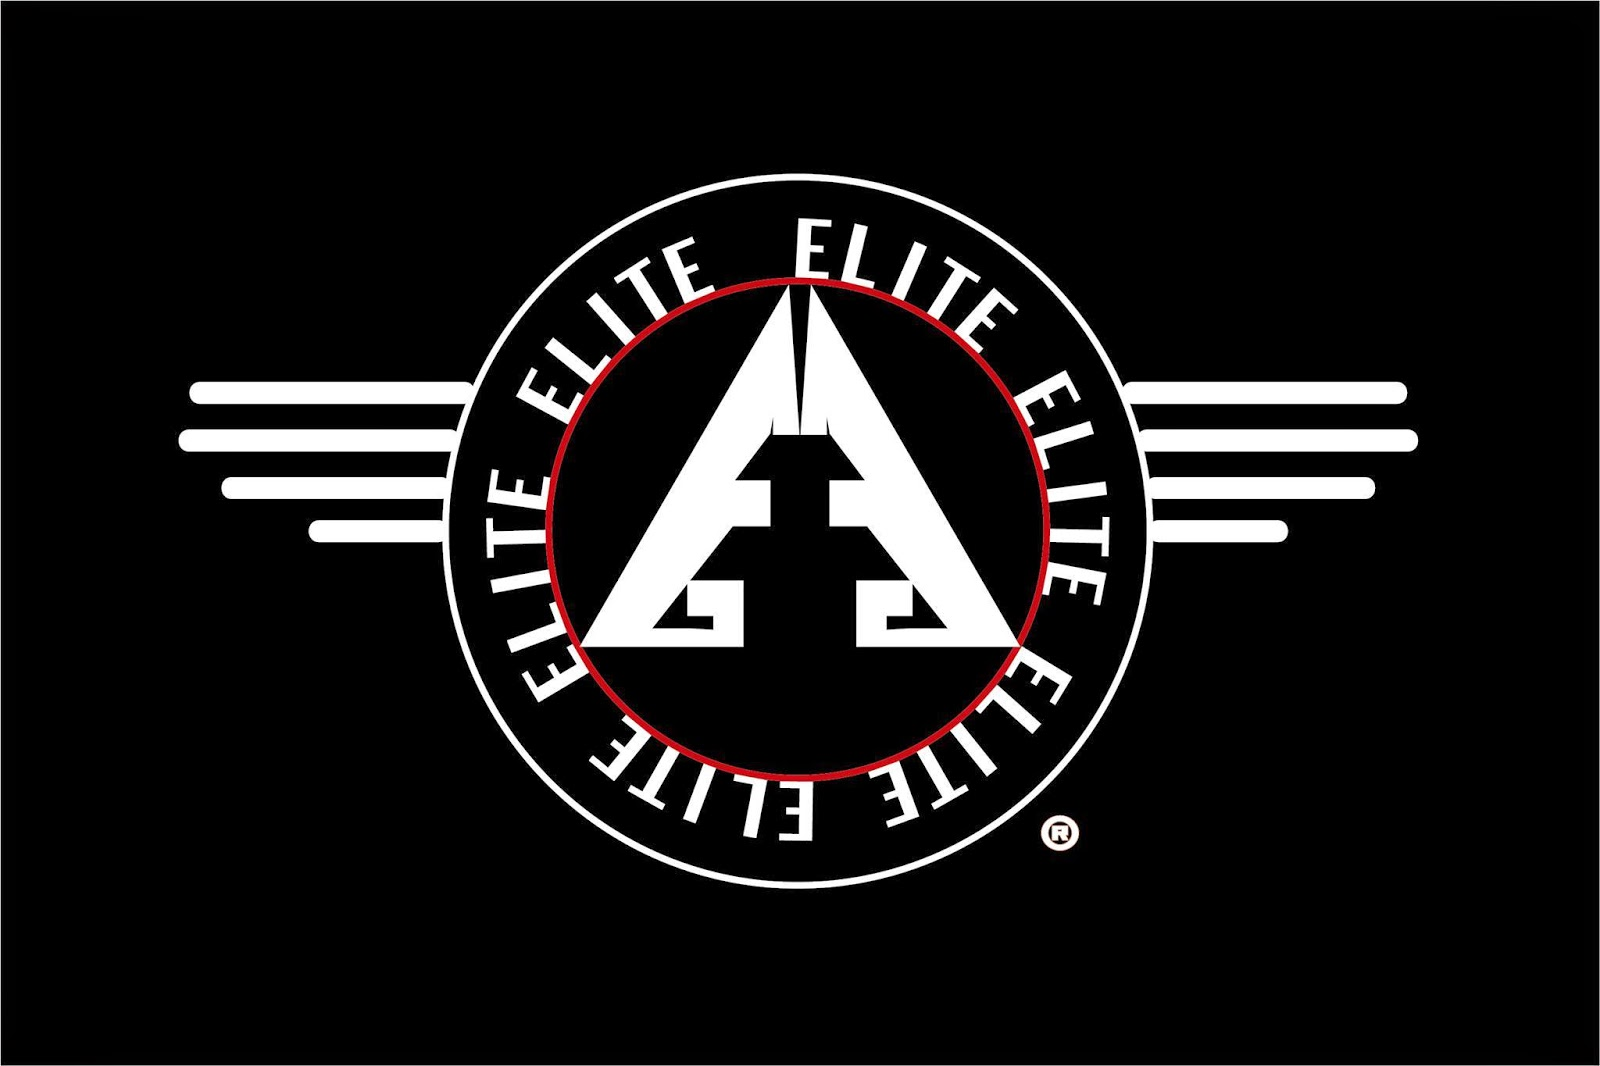 https://www.facebook.com/elitefactoryX